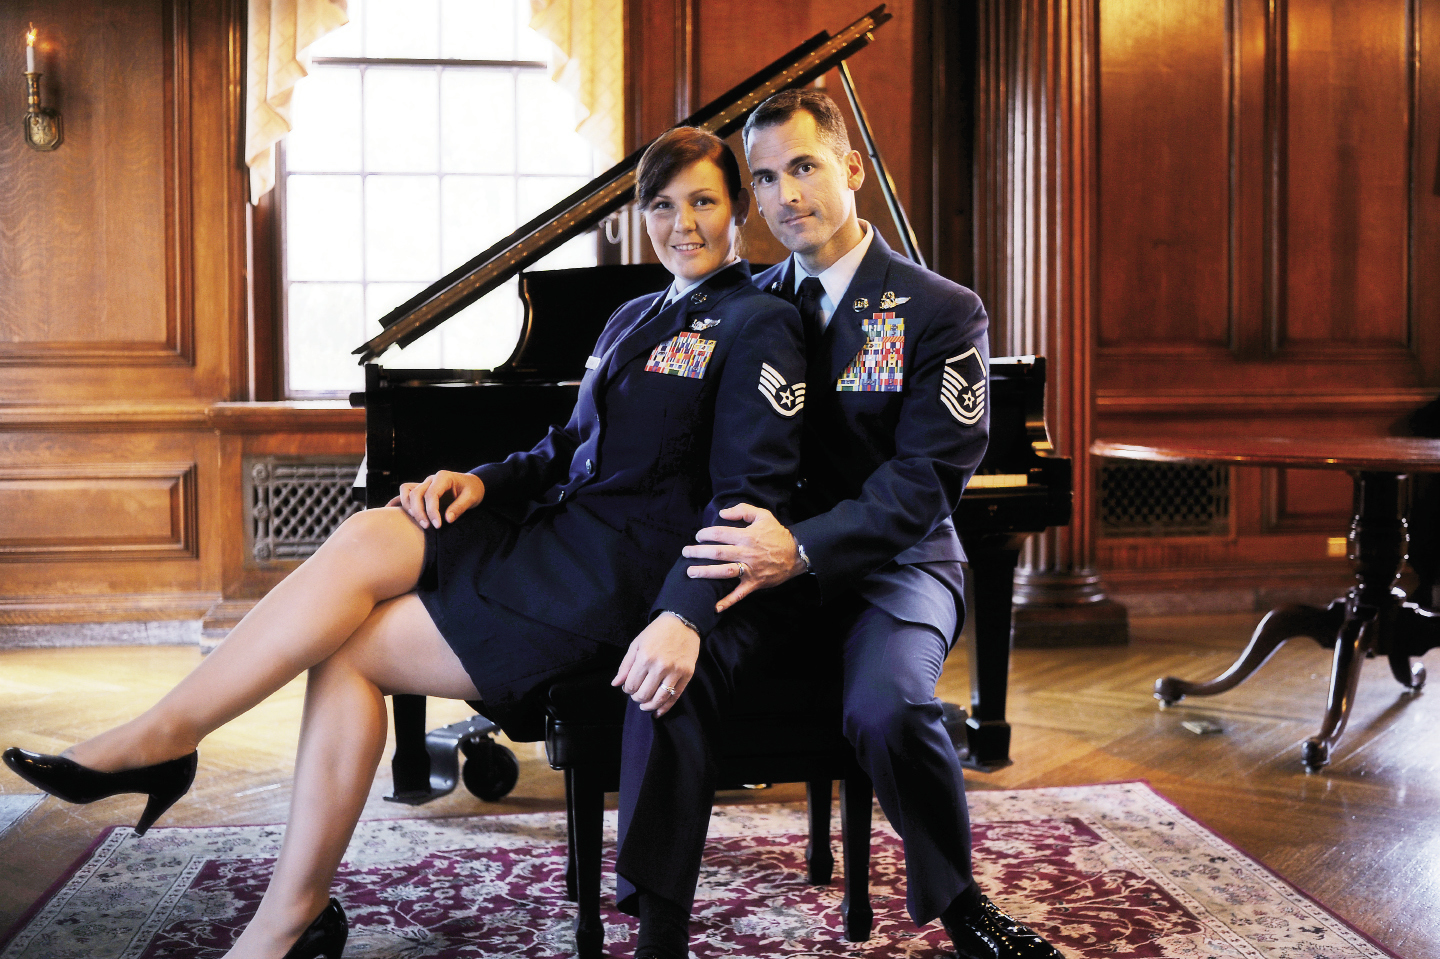 Pearsall and husband Andy Dunaway took a self-portrait in Washington, D.C., where she accepted the 2009 Air Force Veteran of the Year award.